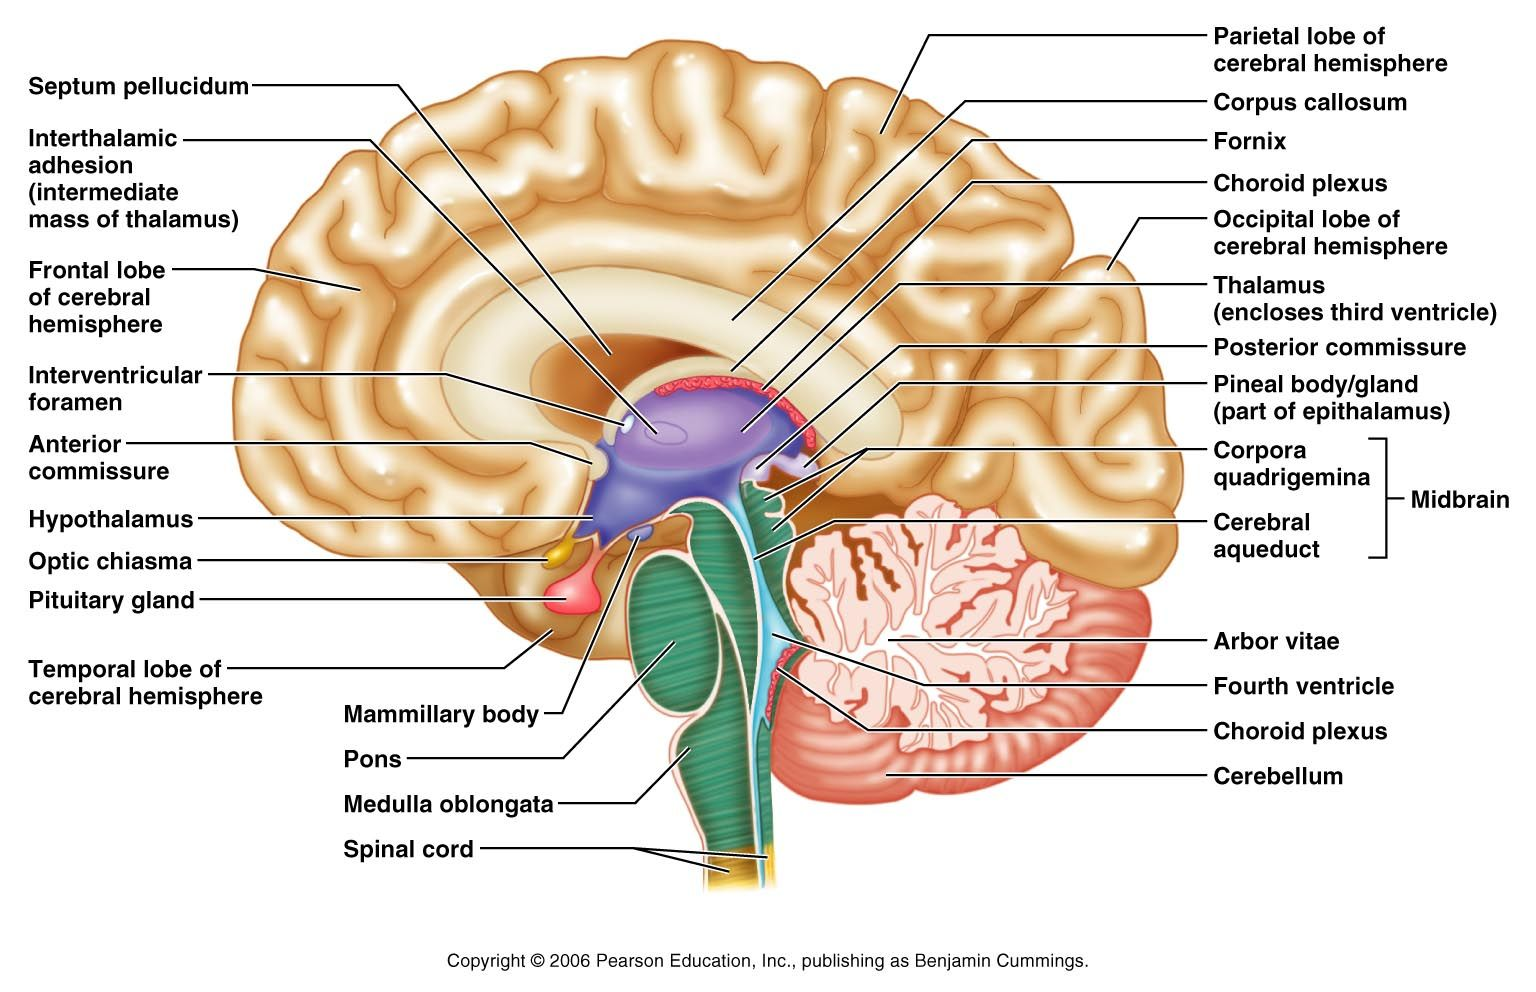 Sagittal Section Of The Brain Thalamus Hypothalamus Optic Chasm Pituitary Gland Pons